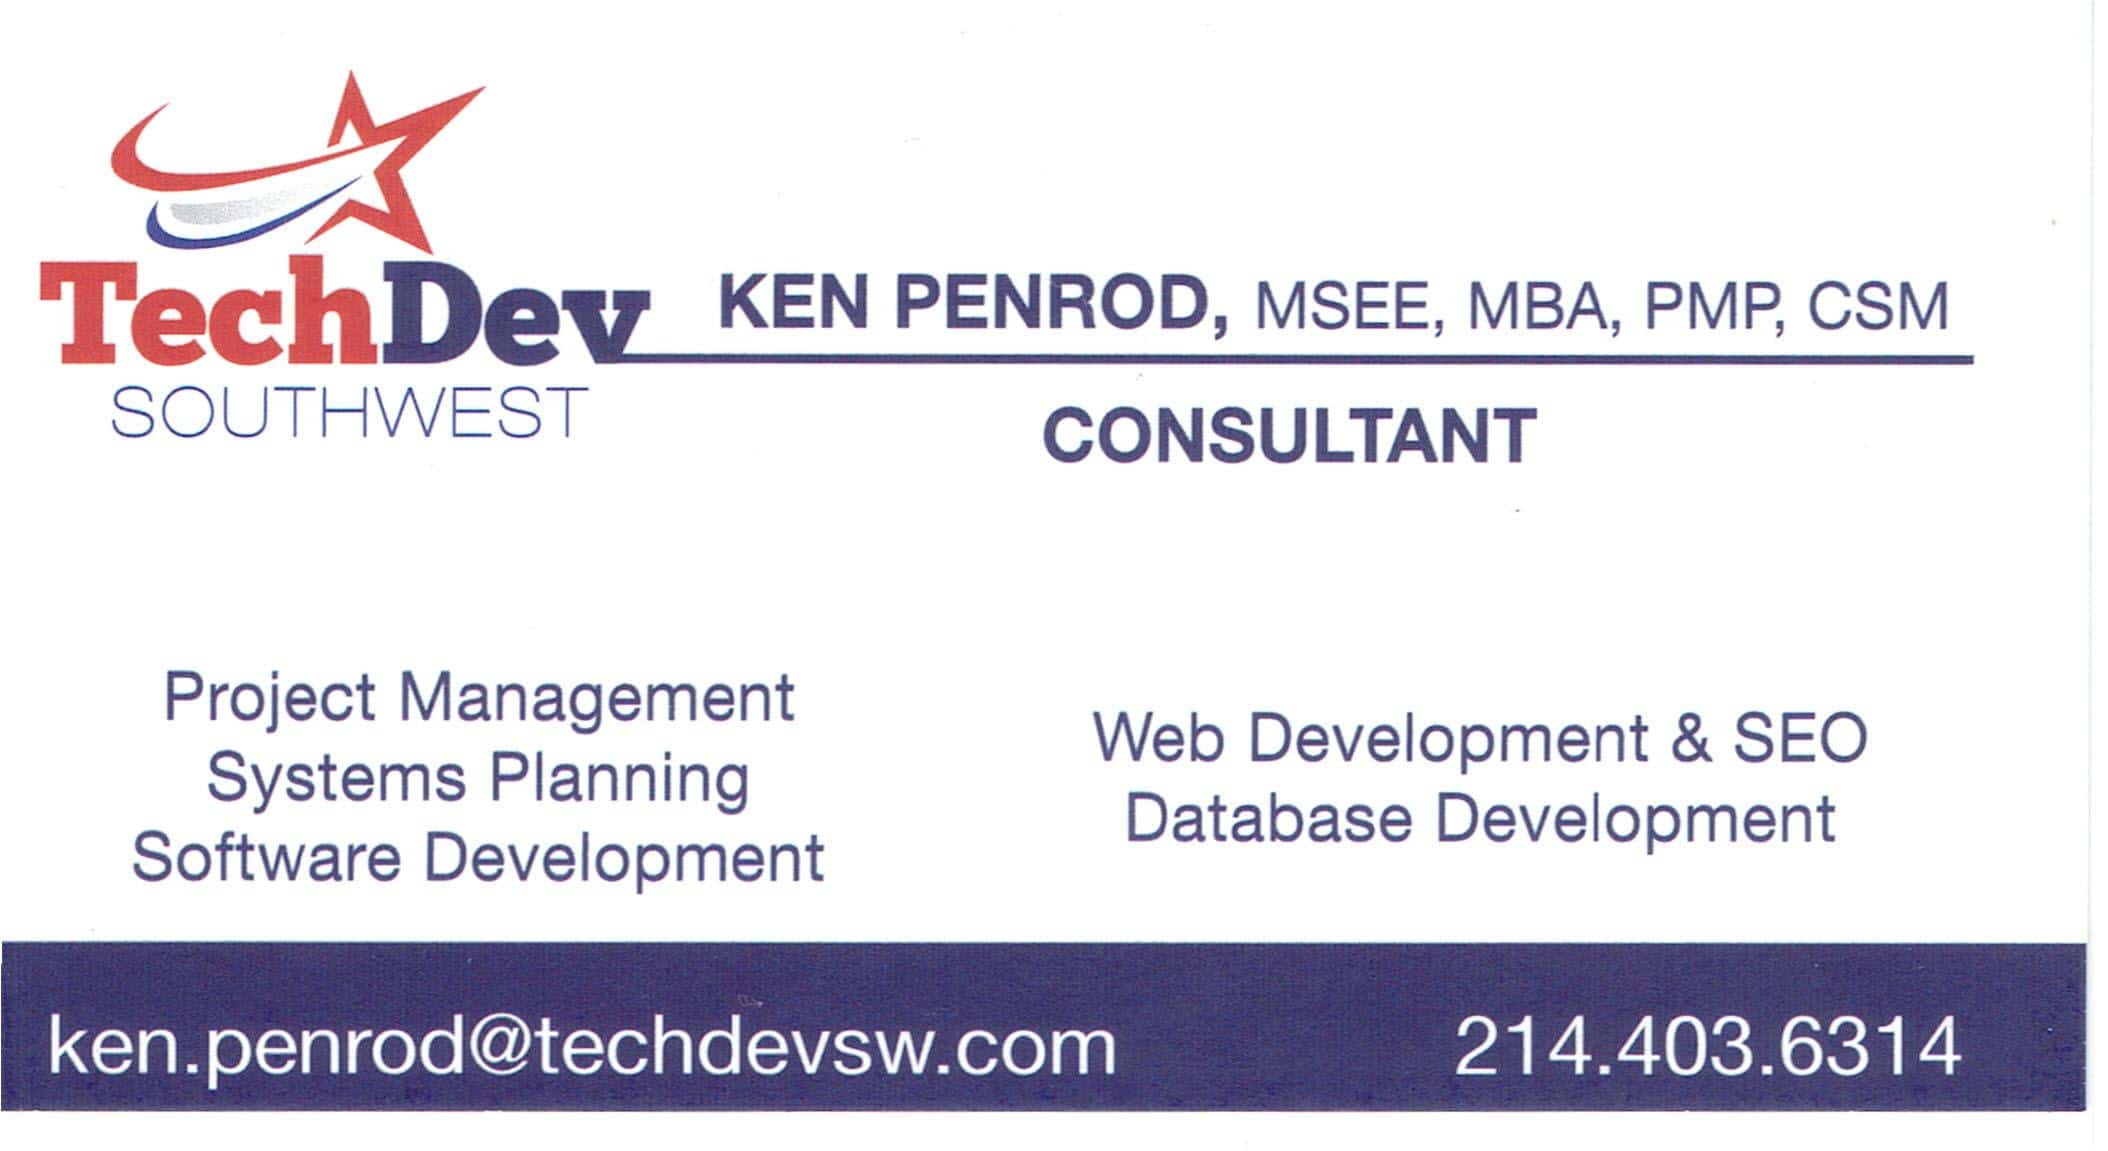 Ken Penrod Business Card